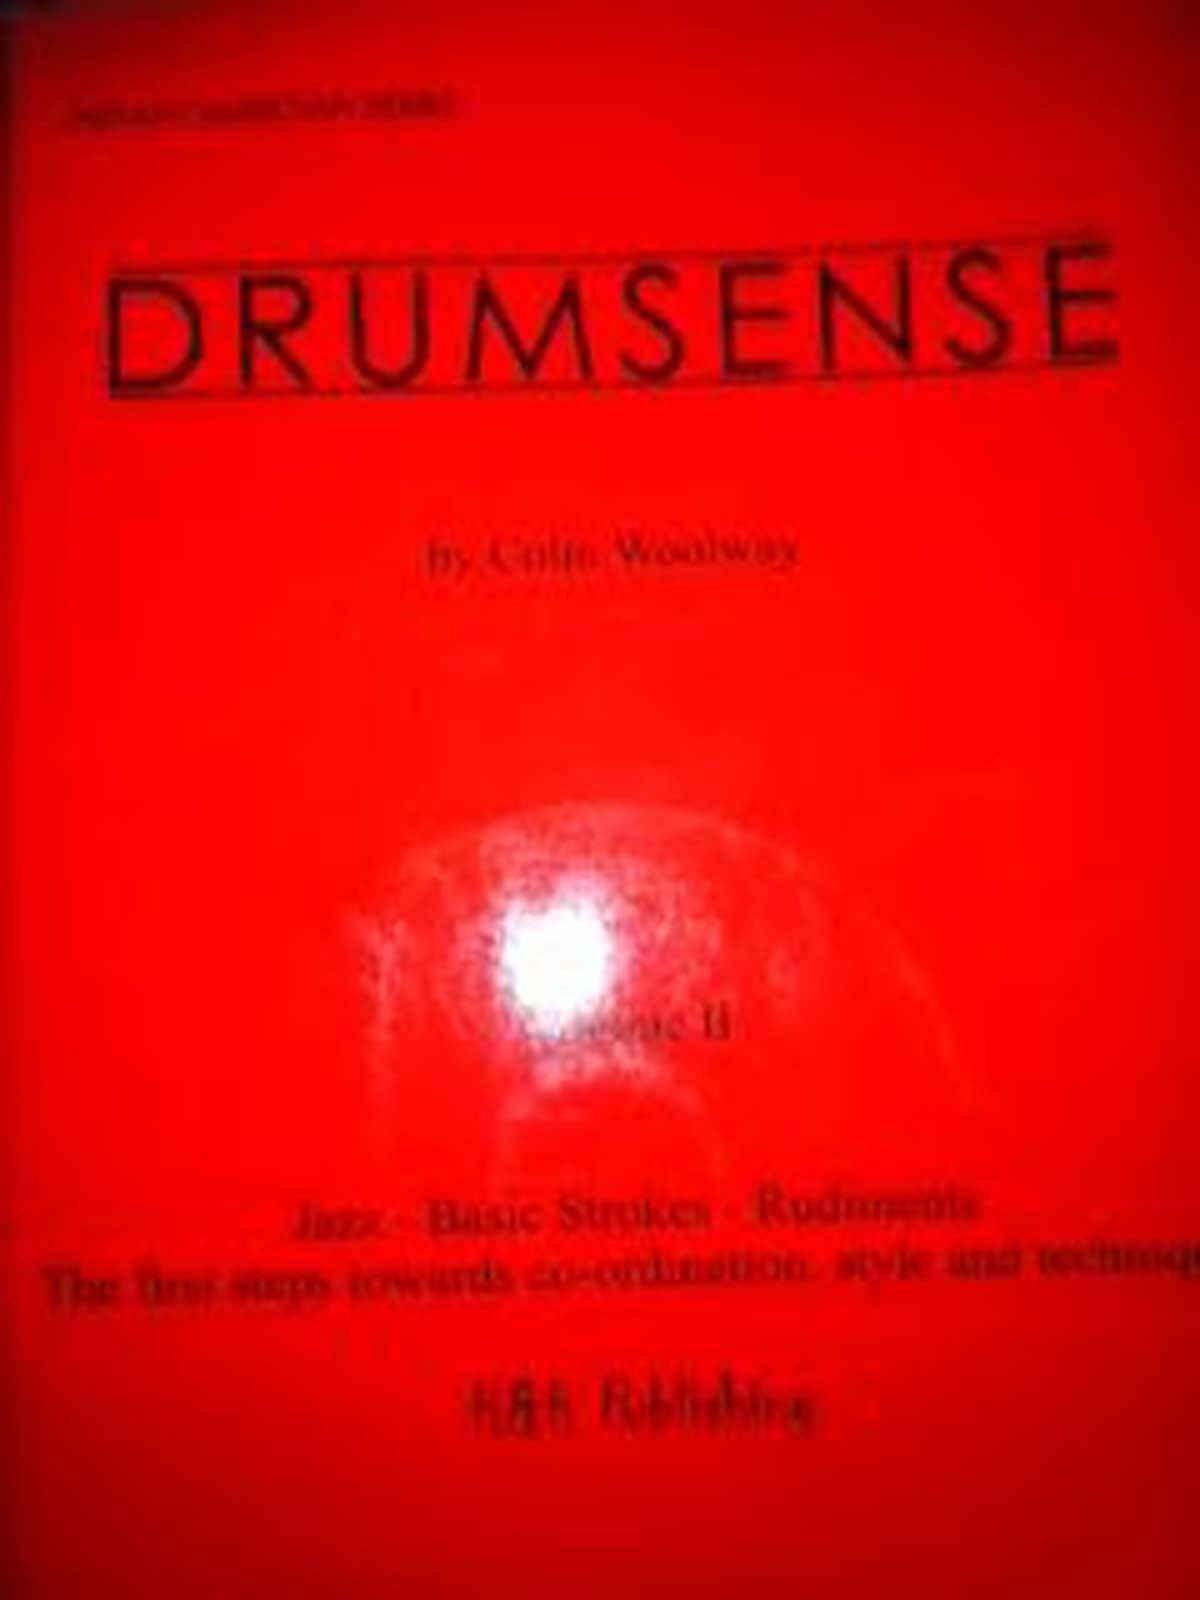 Drumsense Volume II Colin Woolway Jazz Basic Strokes Rudiments Sheet Music B70